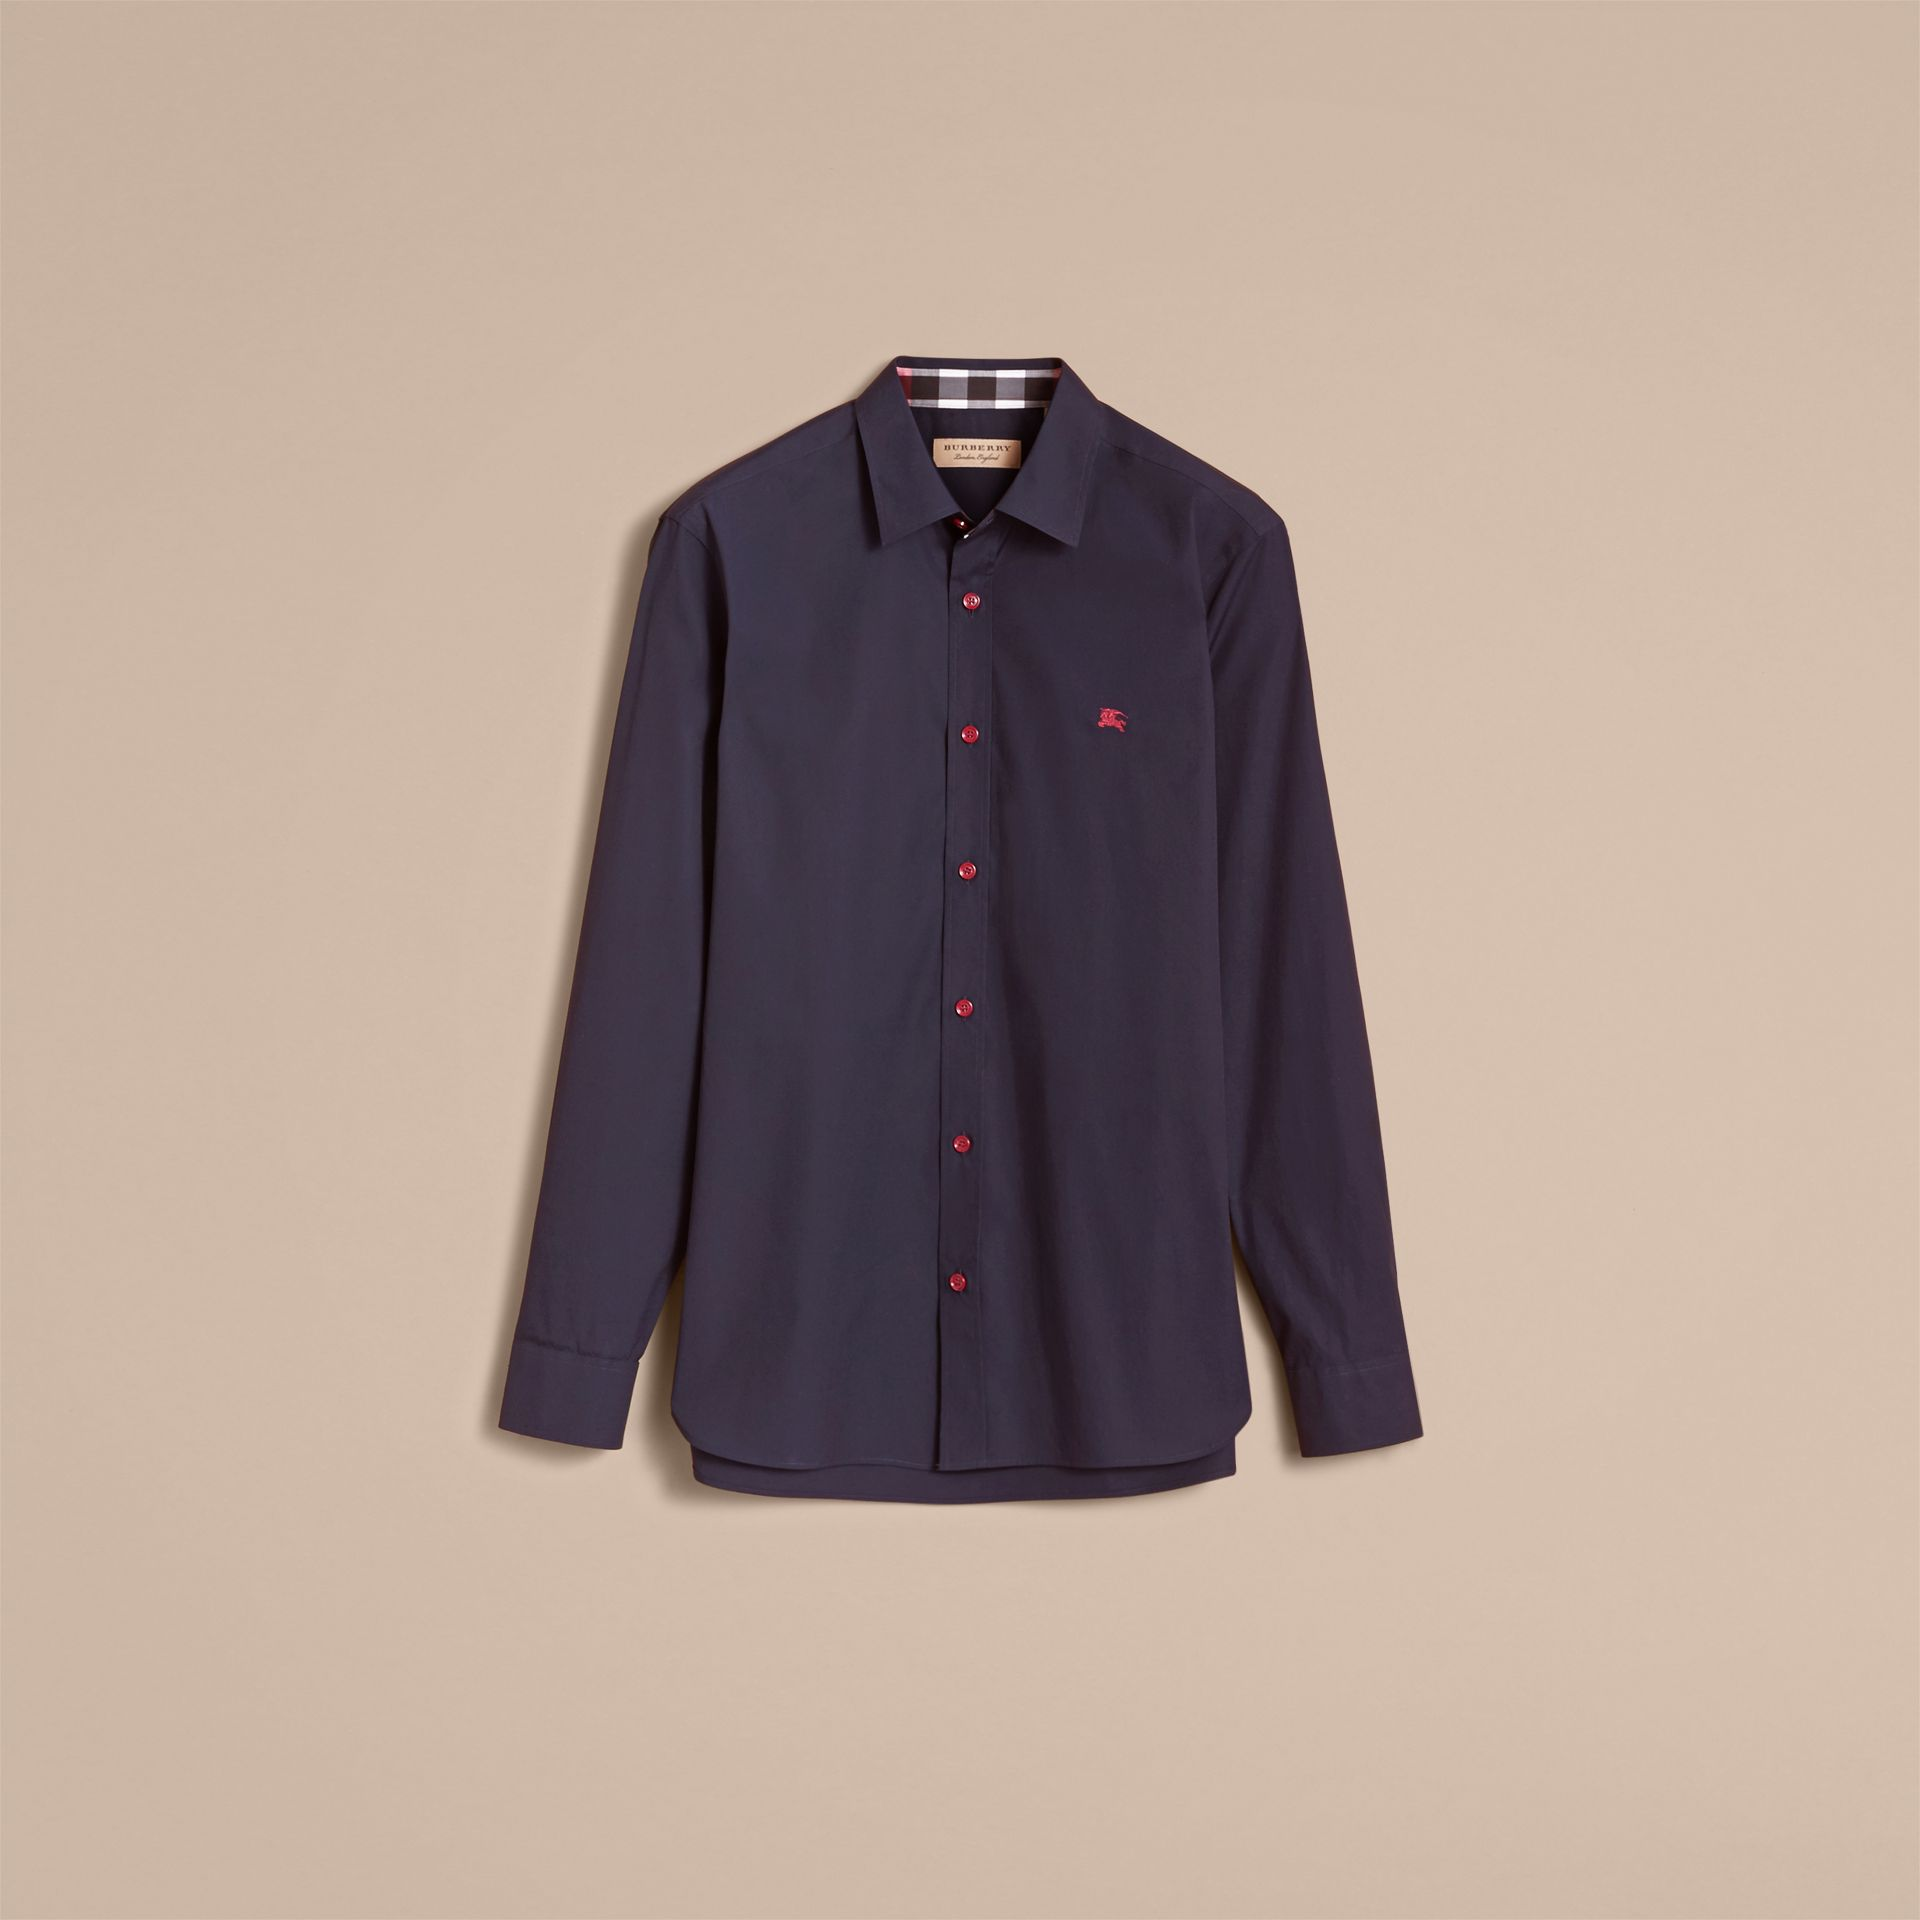 Resin Button Cotton Poplin Shirt in Navy - Men | Burberry - gallery image 4